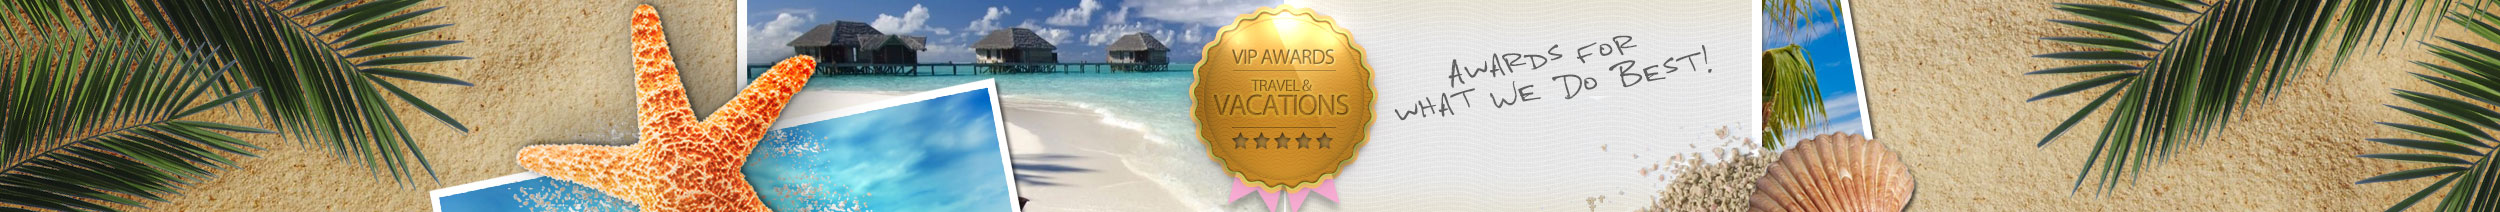 "VIP Vacations Wins ""Best of the Best"" from Travel Impressions"